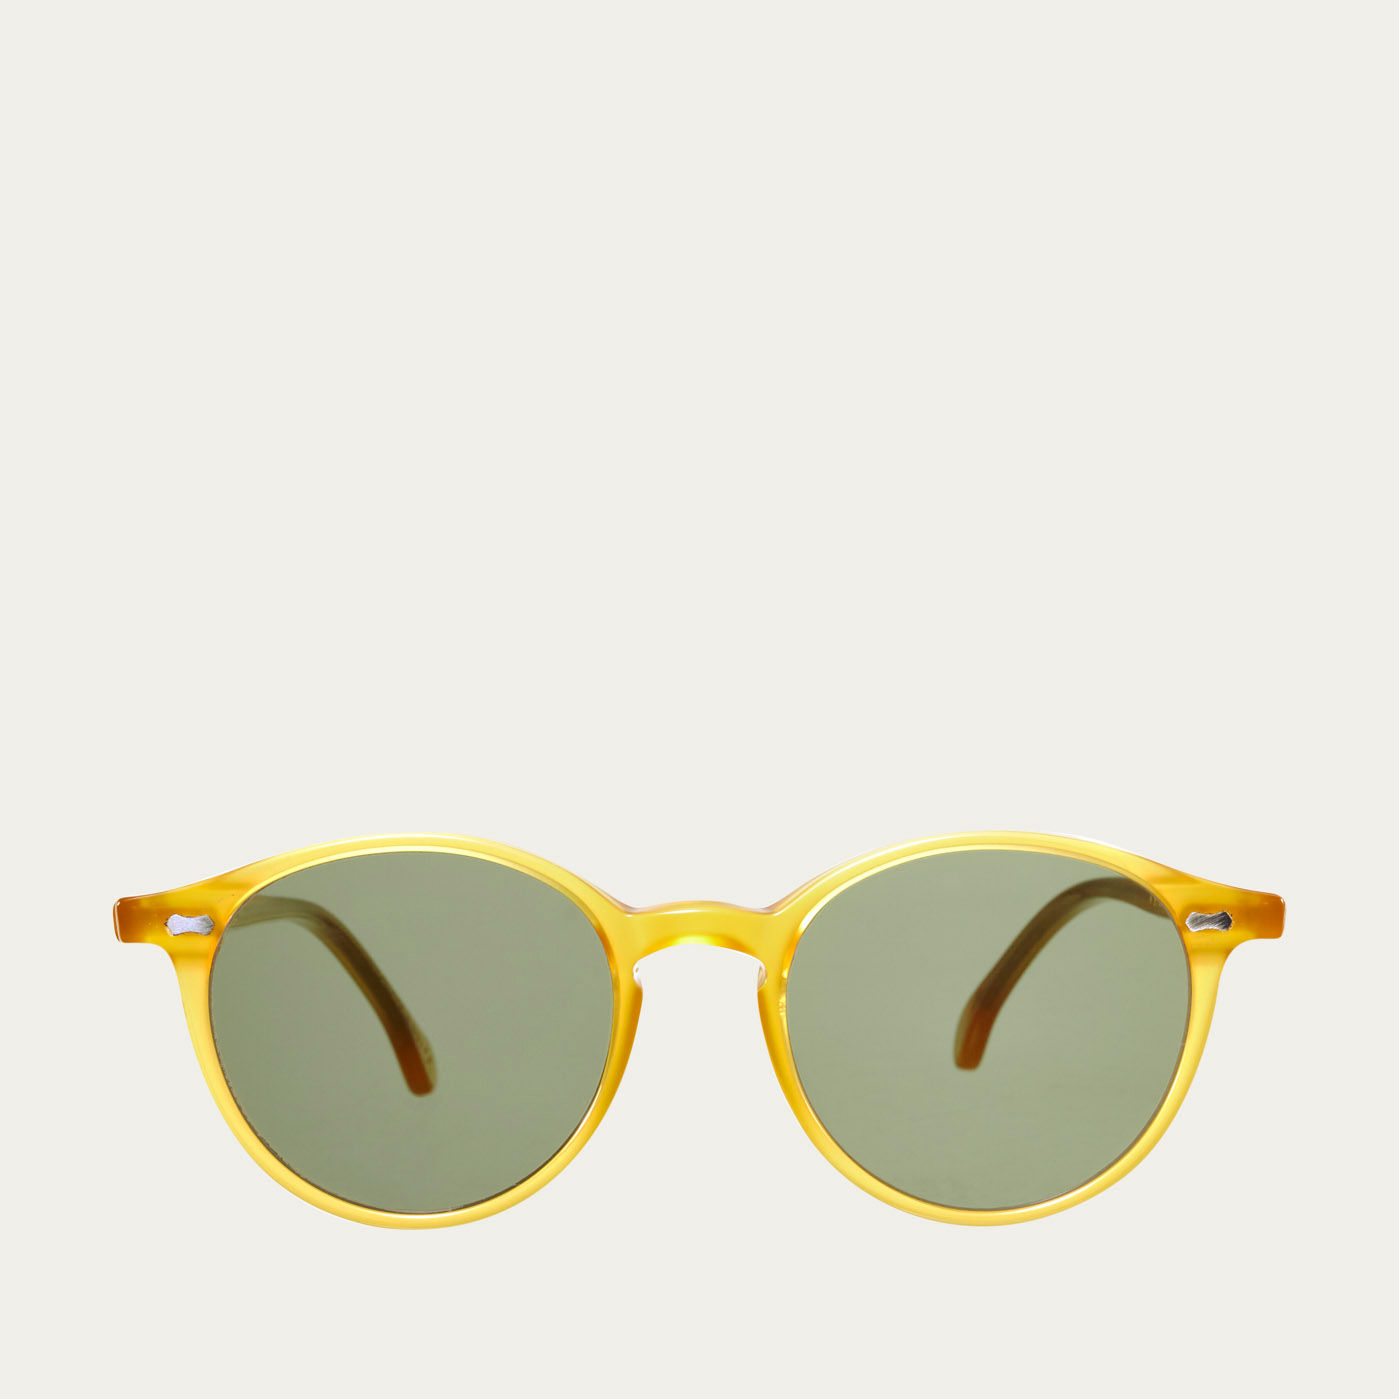 Honey / Bottle Green Cran Sunglasses | Bombinate